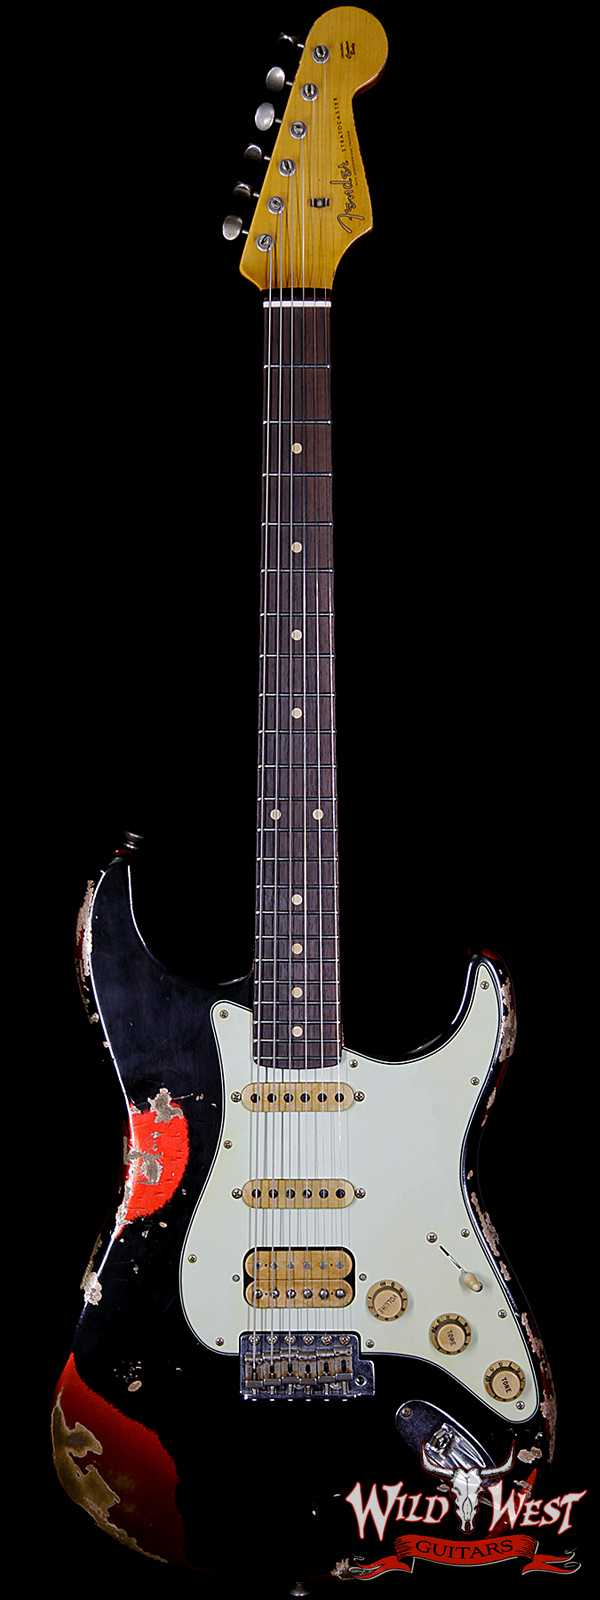 Fender Custom Shop Black Lightning Stratocaster Heavy Relic HSS Rosewood Board Candy Apple Red